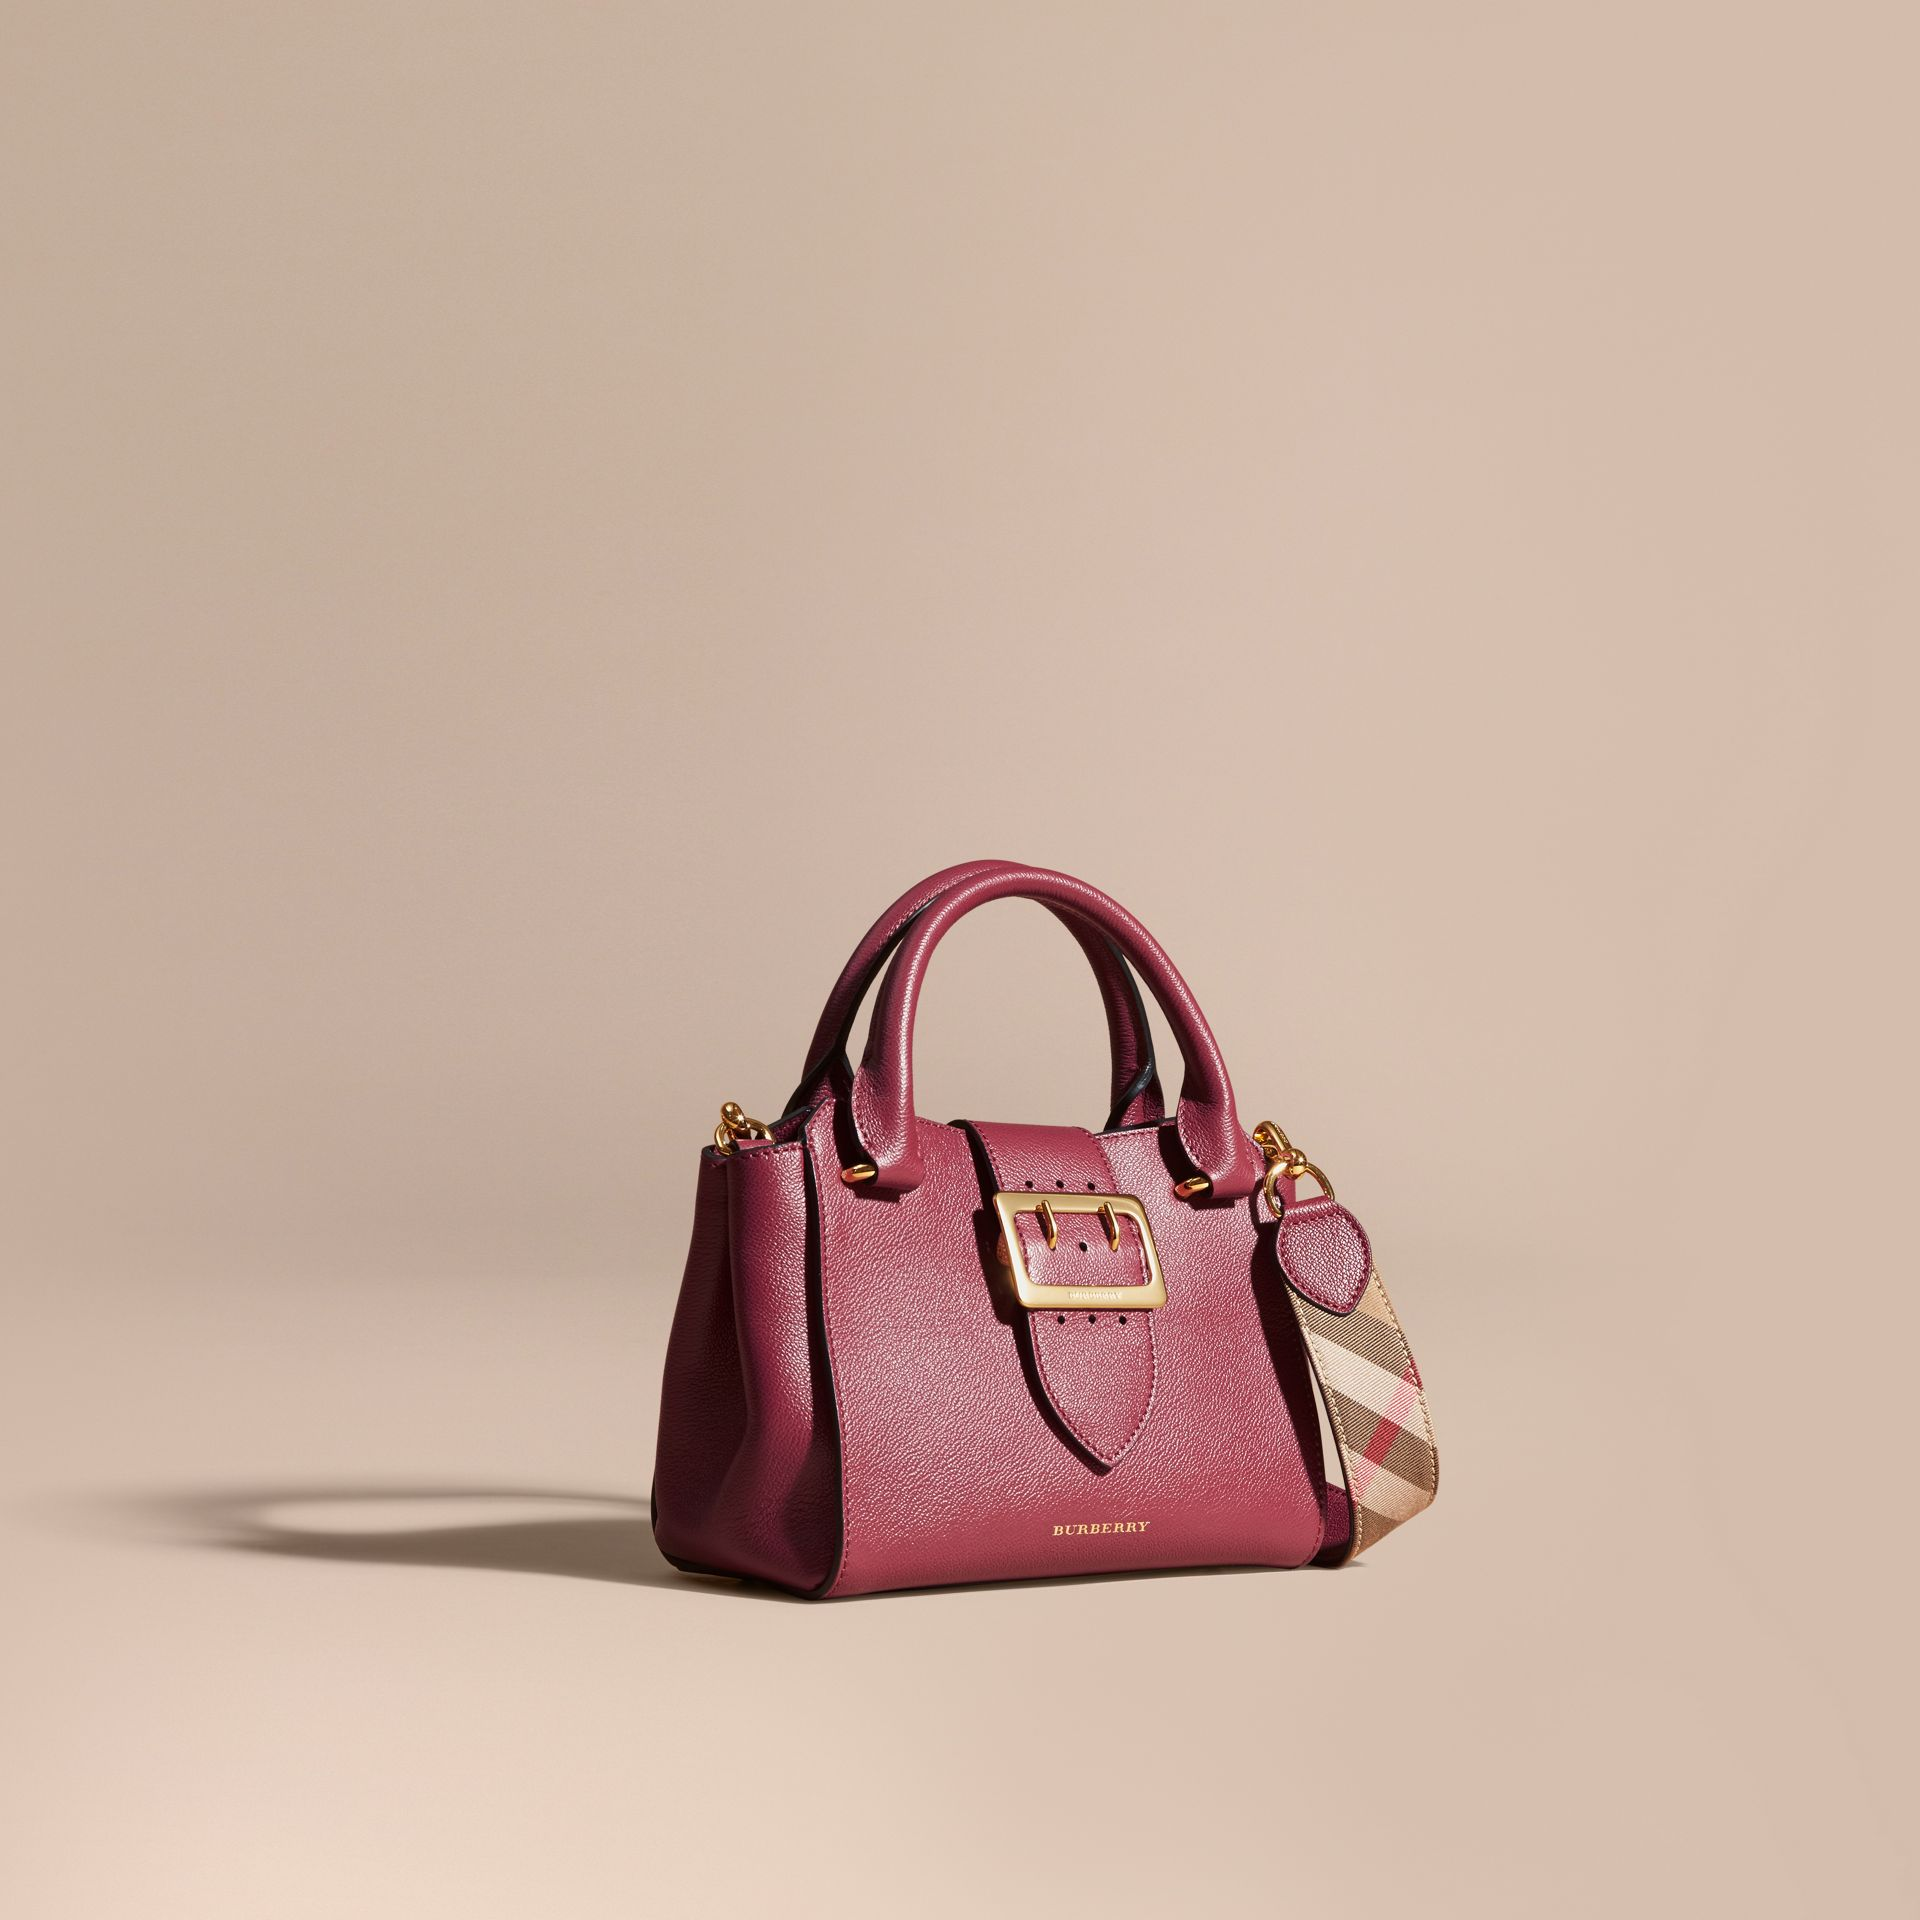 Dark plum The Small Buckle Tote in Grainy Leather Dark Plum - gallery image 1